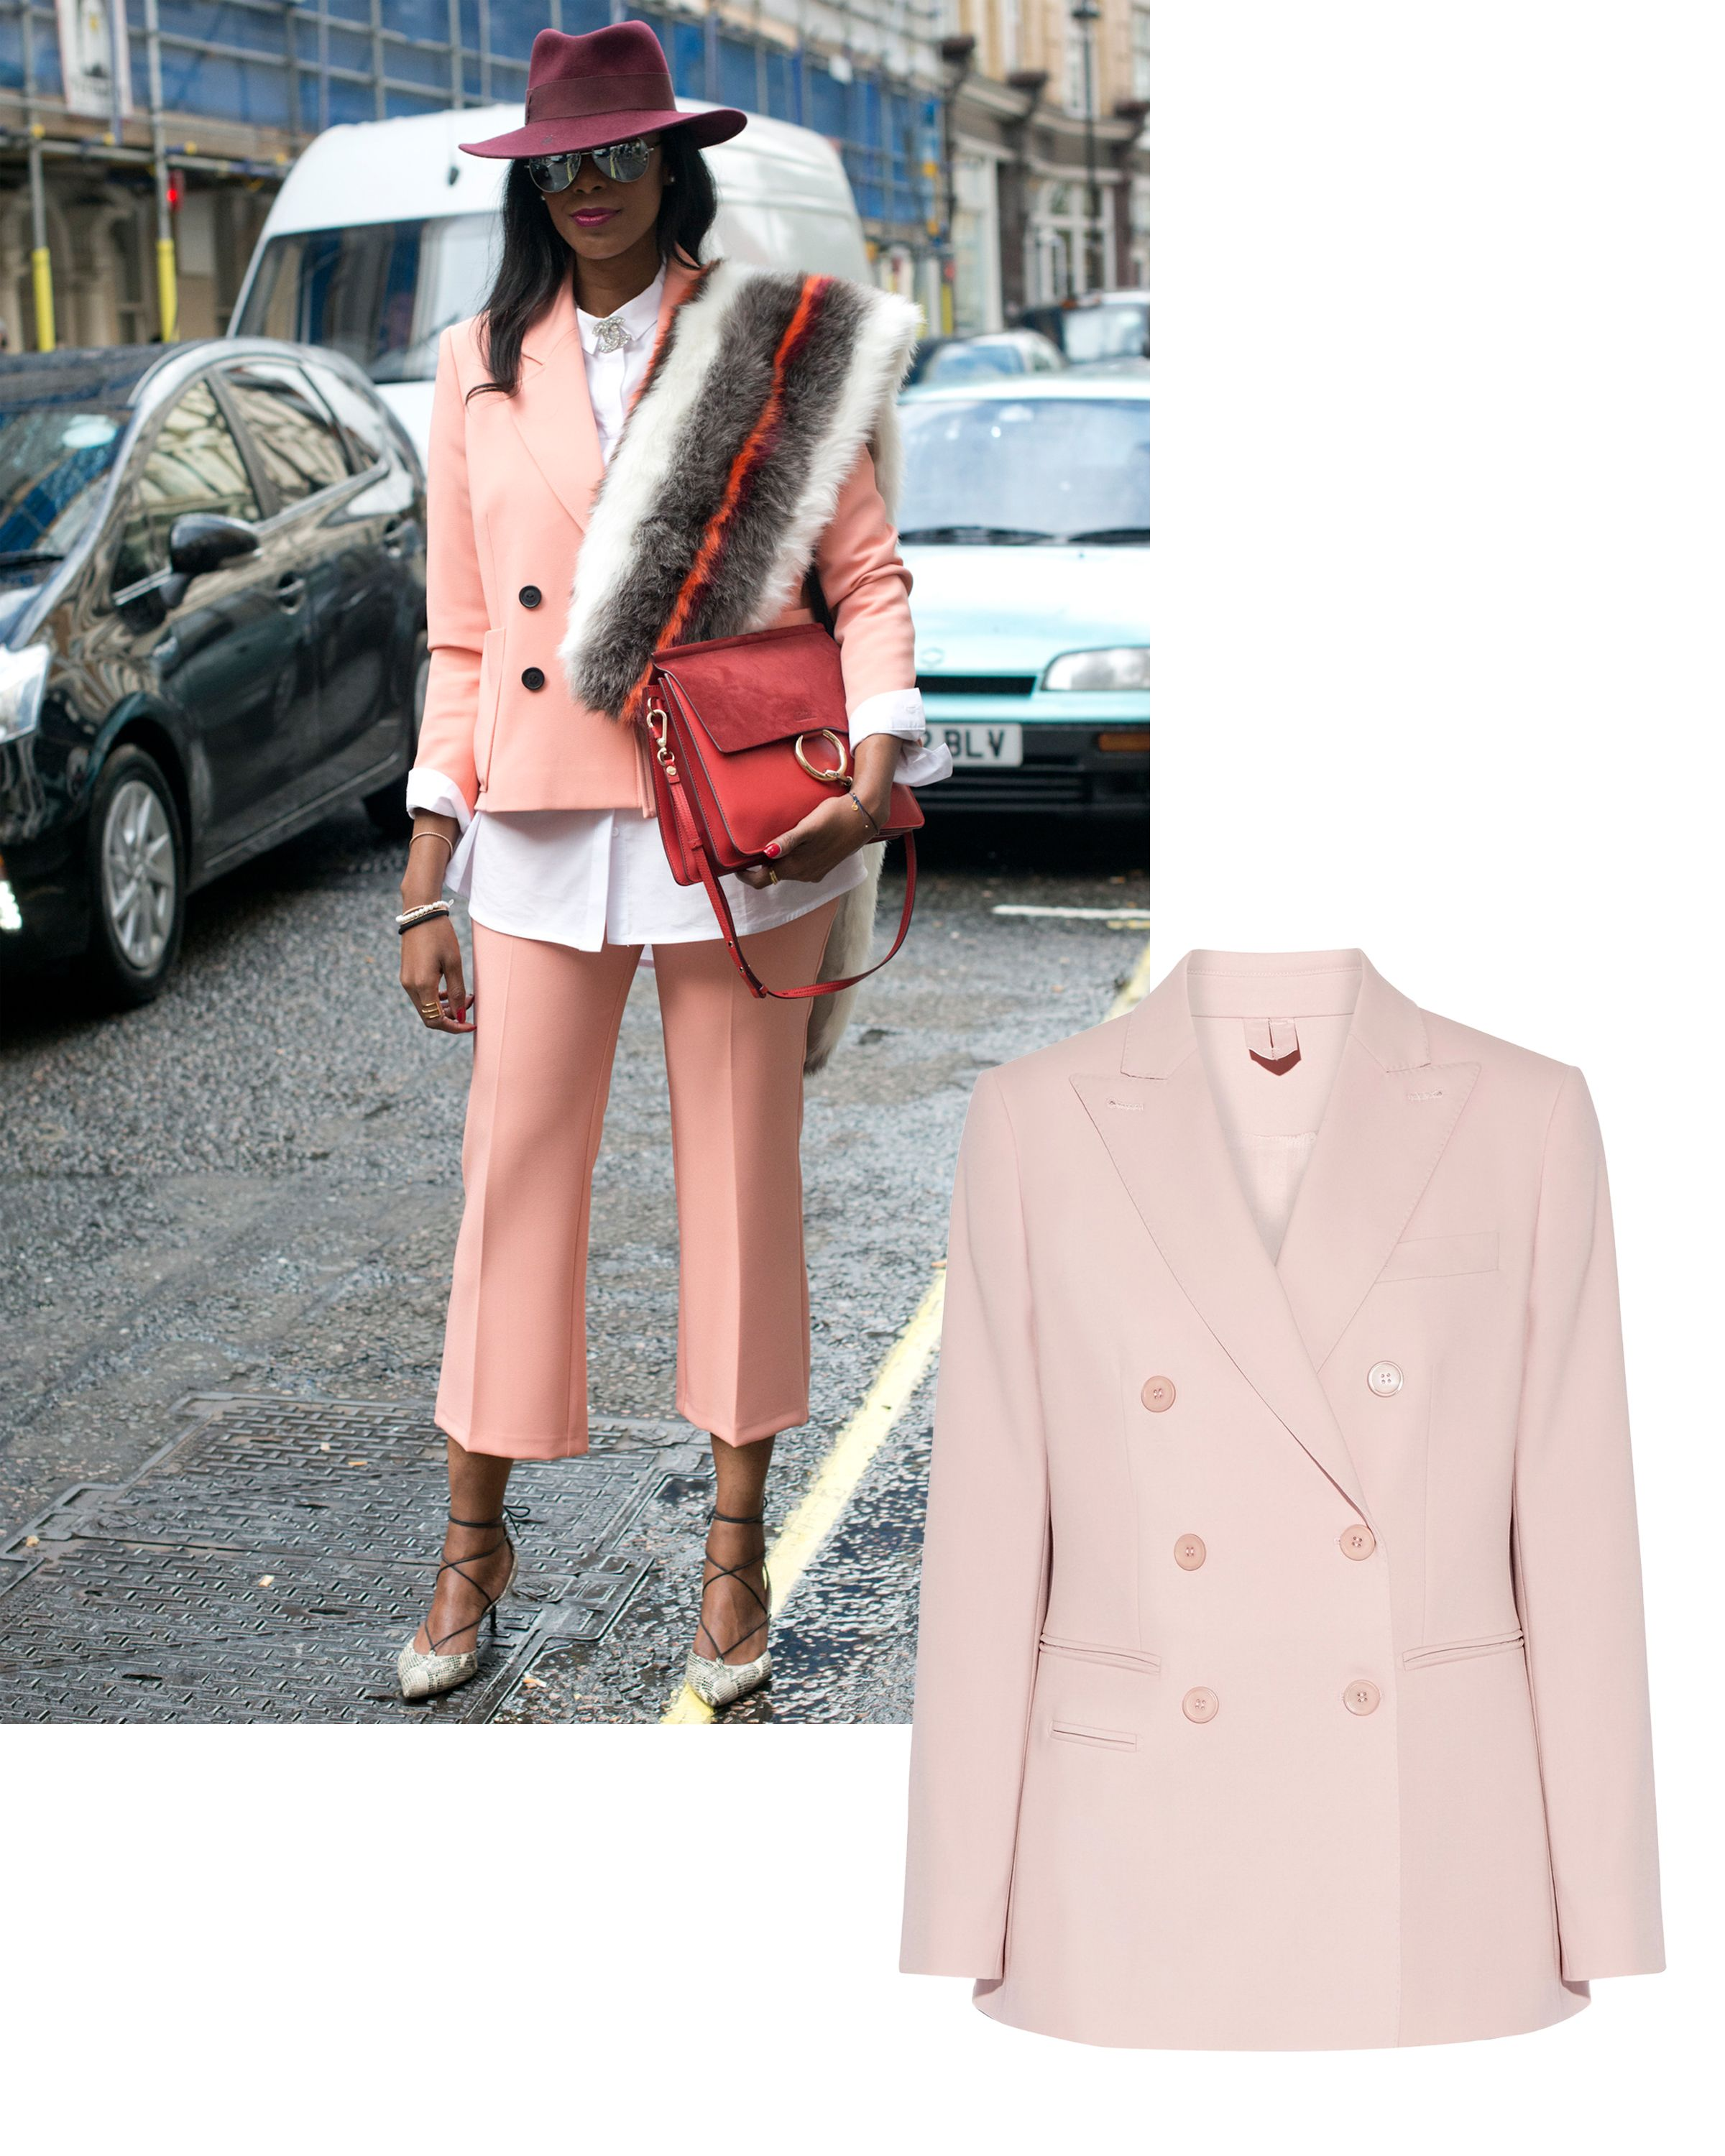 "<p>Pink is <em data-redactor-tag=""em"">the</em> color of the season, and peachy undertones offer a distinctly playful vibe. The soft hue and clean cut of this blazer are a fresh juxtaposition. </p><p><em data-redactor-tag=""em"">Max Mara blazer, <a href=""https://ad.doubleclick.net/ddm/clk/319401355;148059560;e"" target=""_blank"" data-tracking-id=""recirc-text-link"">NET-A-PORTER.com</a>.</em></p>"